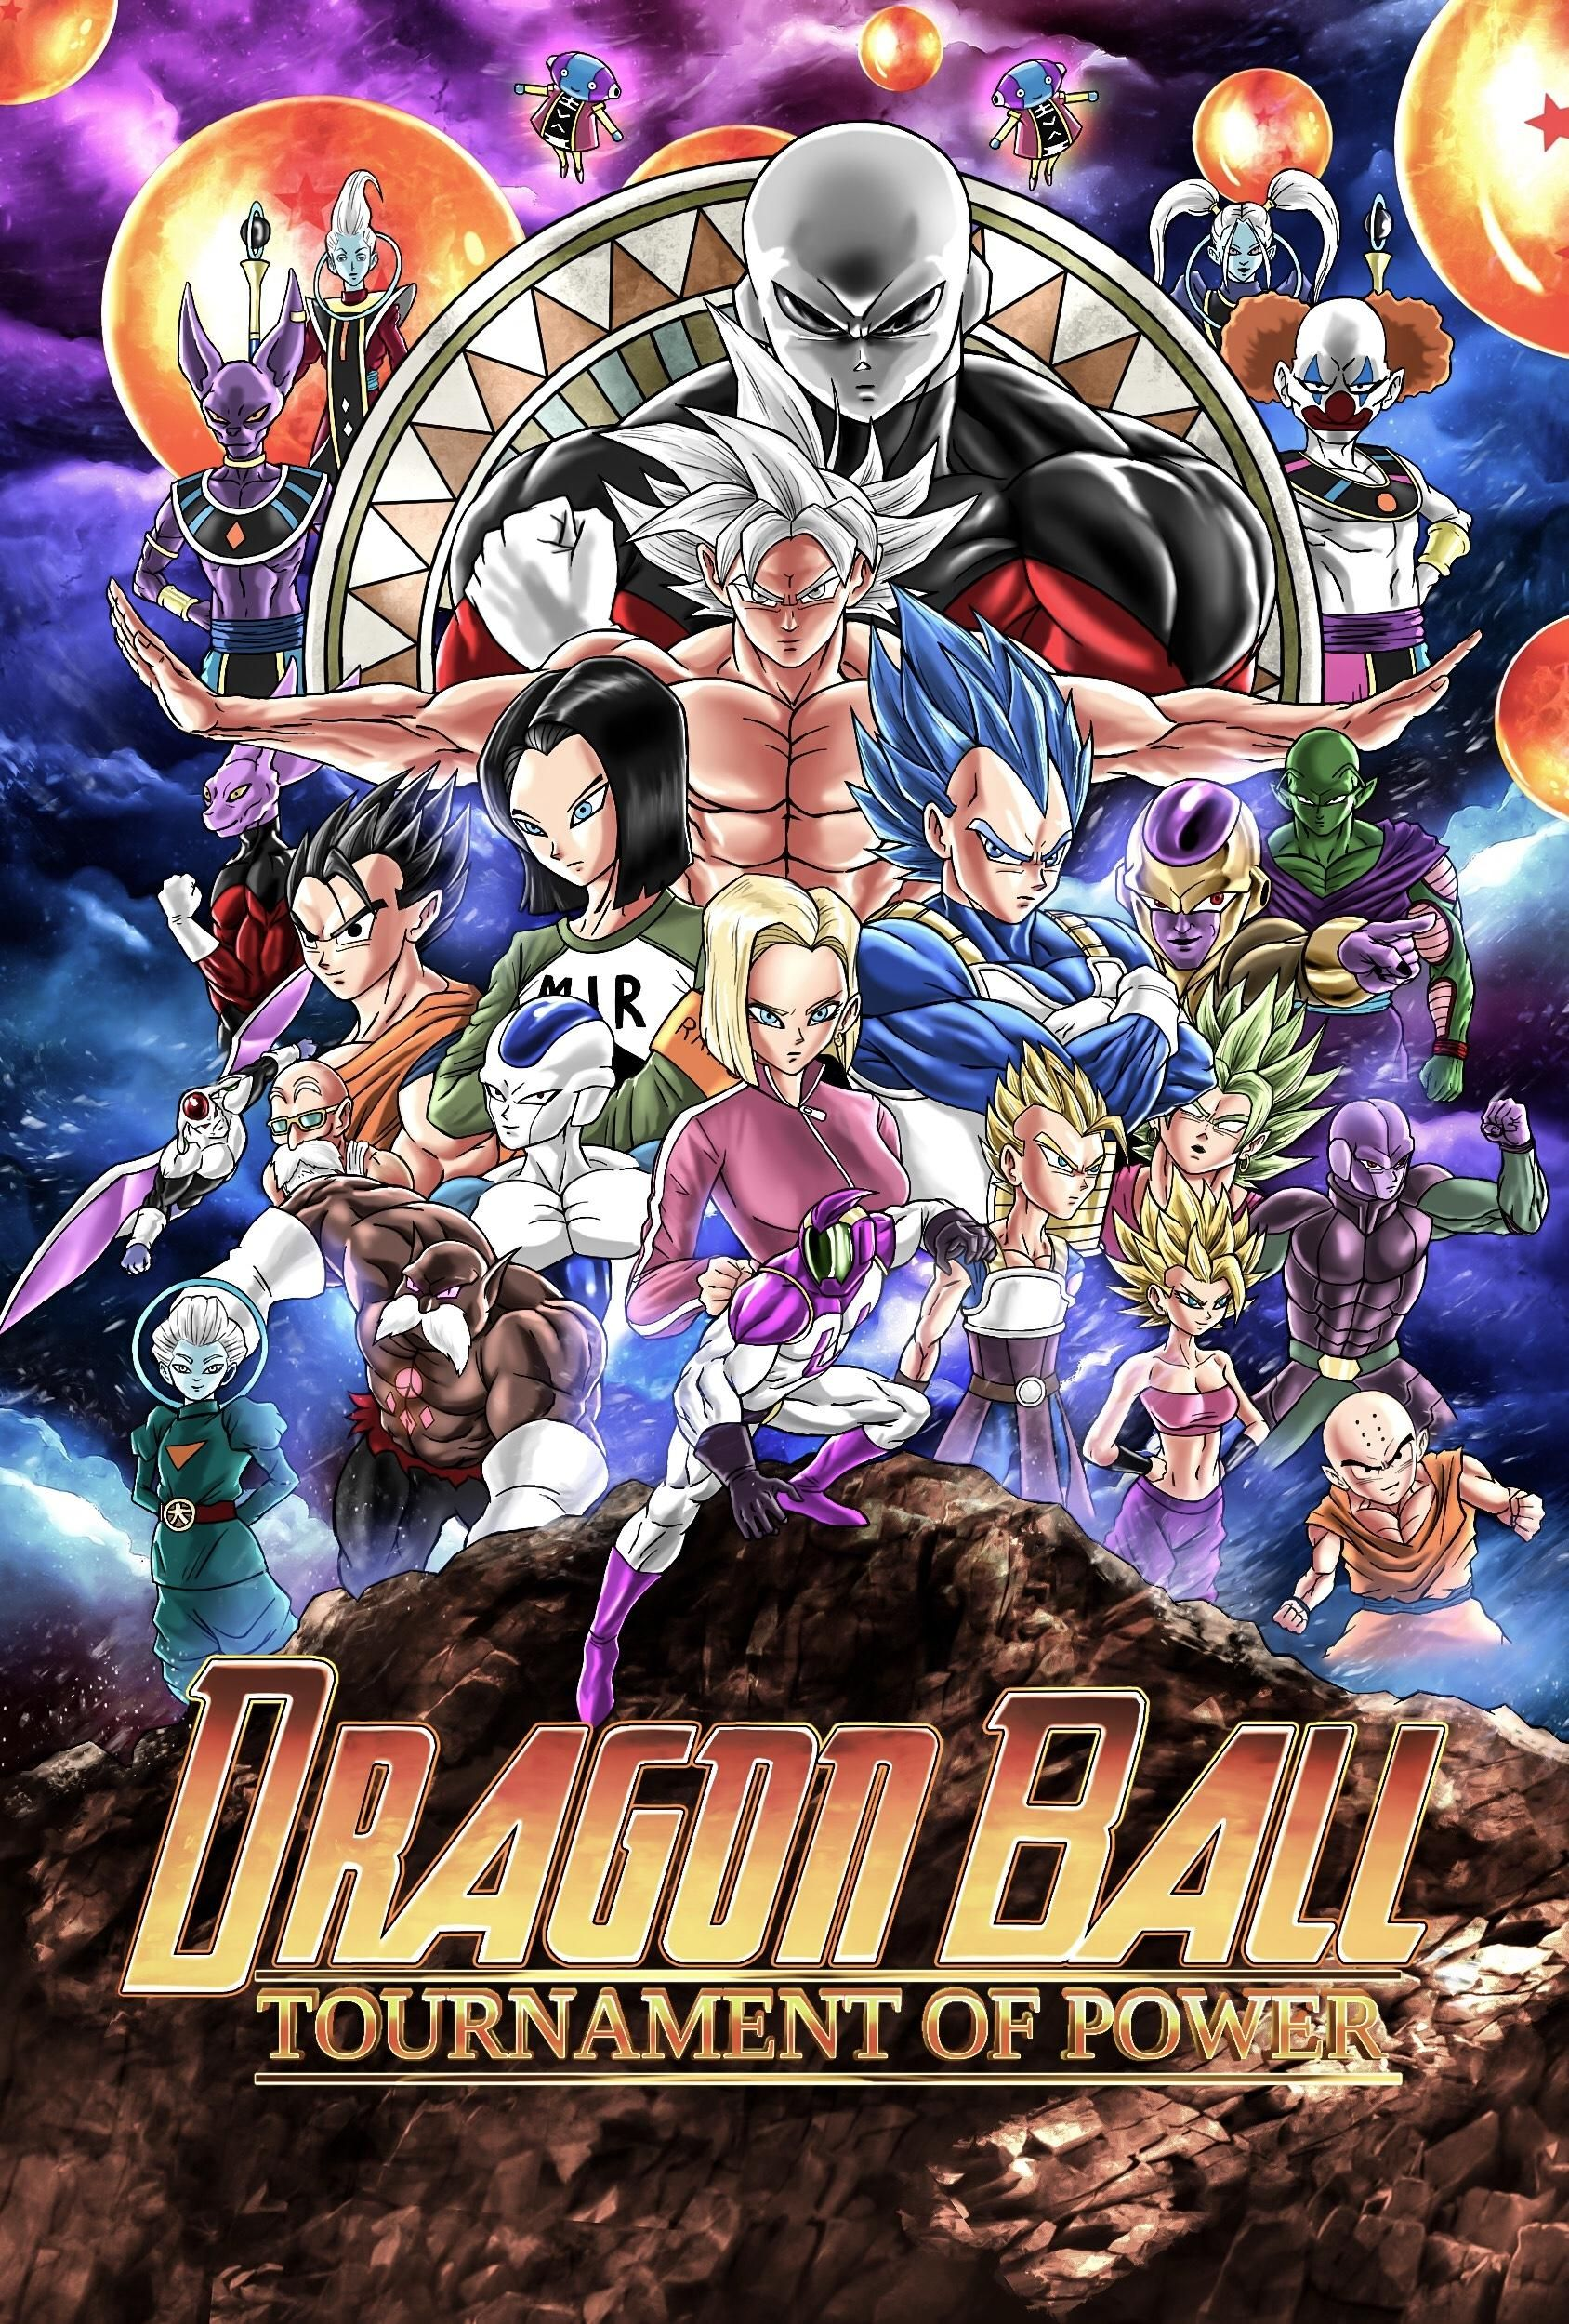 'Dragon Ball Super' Poster Turns The Tournament of Power